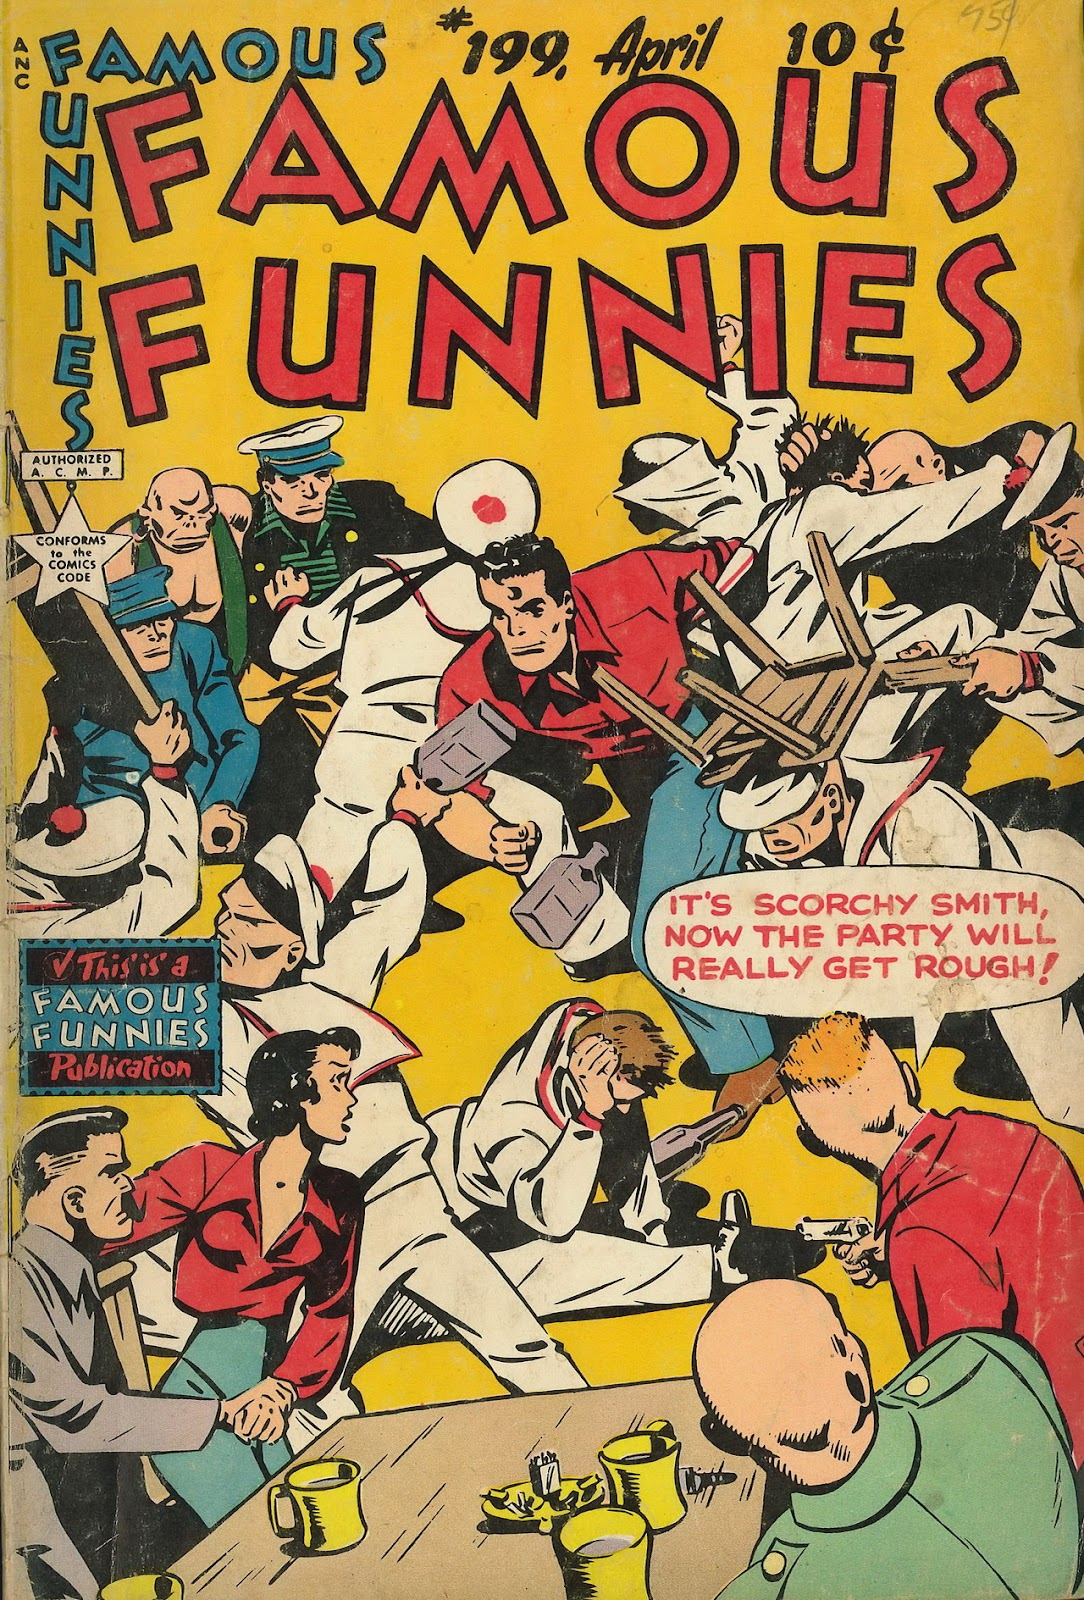 Read online Famous Funnies comic -  Issue #199 - 1